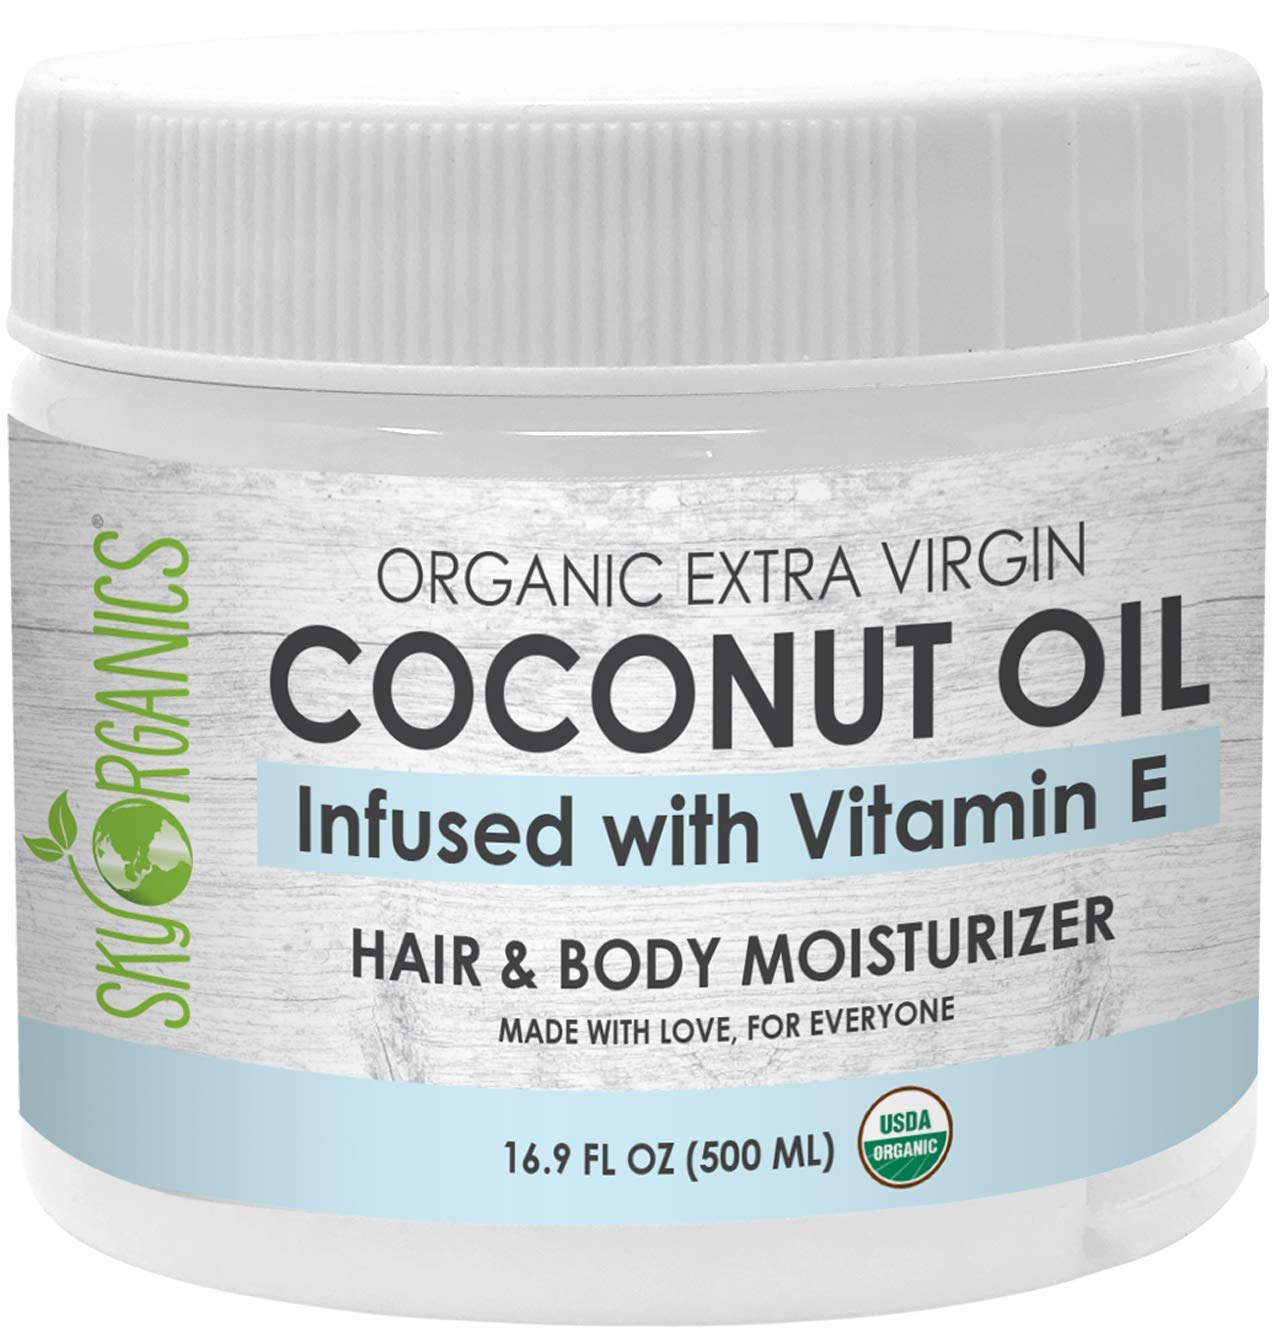 USDA Organic Coconut Oil with Vitamin E (16.9 oz Jar) Pure Vitamin E Infused Coconut Oi - Bio Coconut Oil for Hair and Skin, Coconut Oil Hair Mask